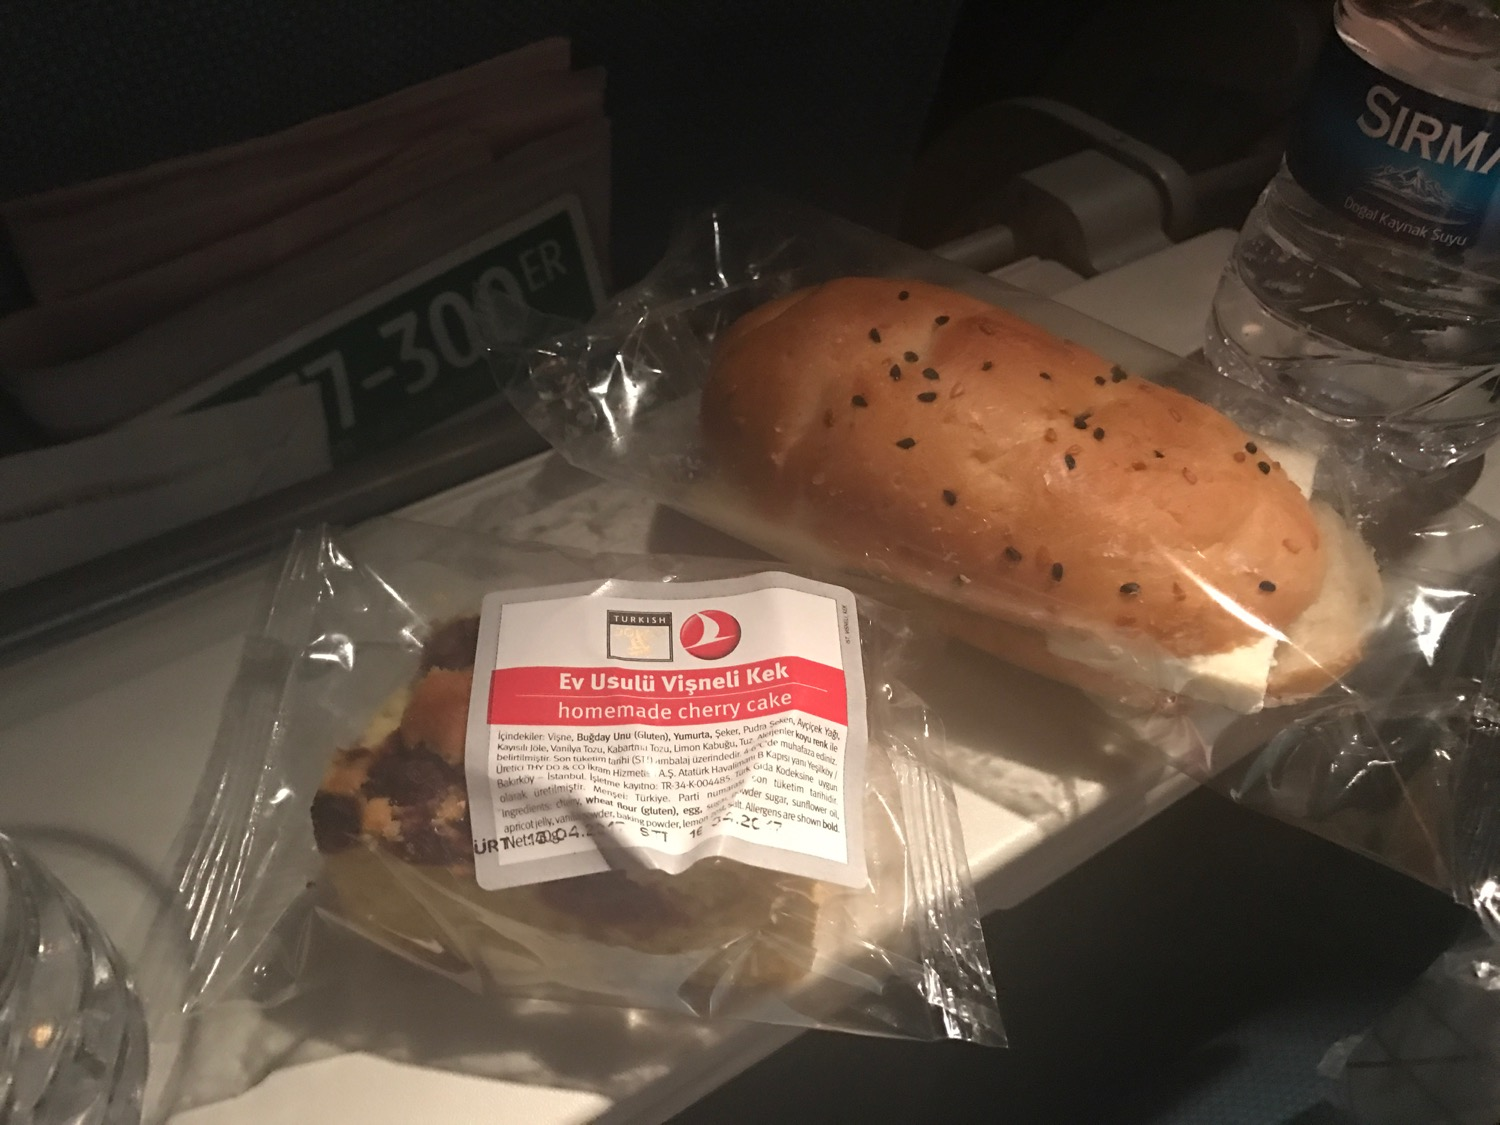 Turkish Airlines Economy Class Meals - 8